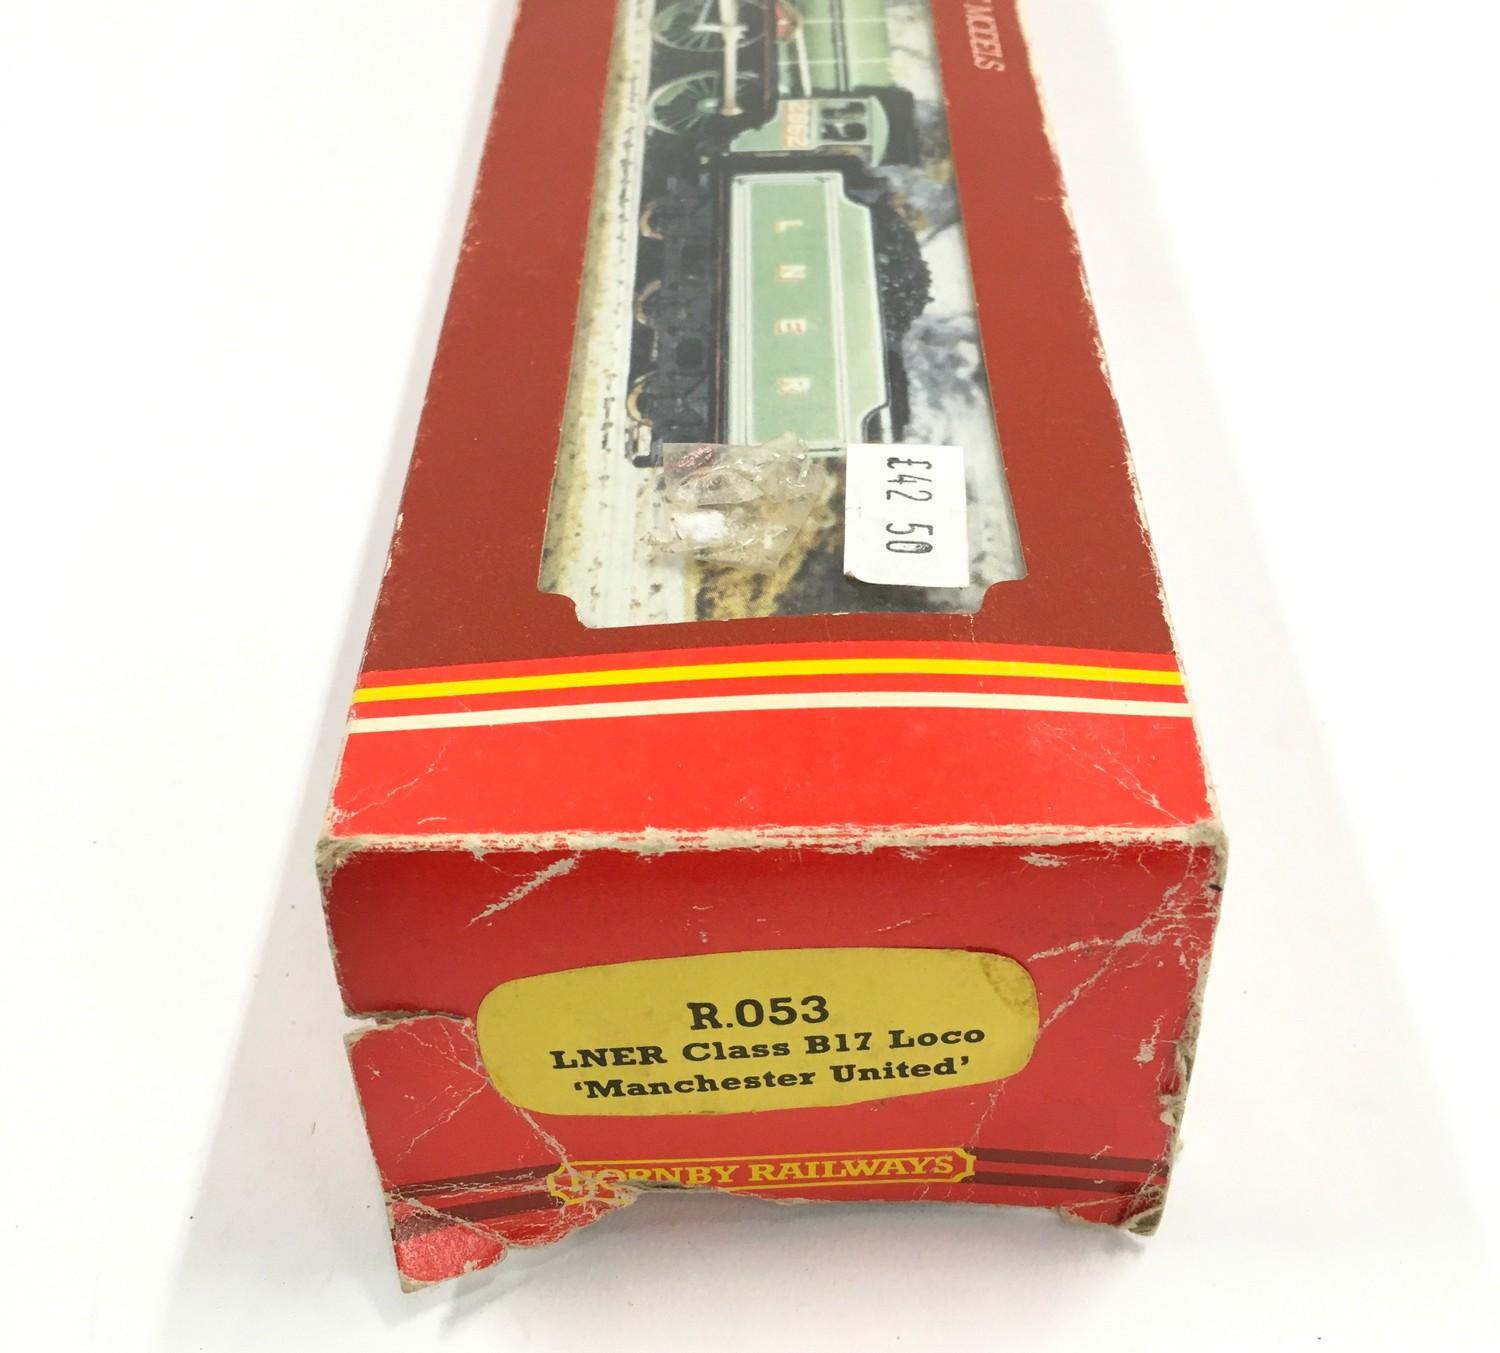 Hornby R053 LNER Class B17 locomotive ?Manchester United? - boxed. - Image 3 of 3